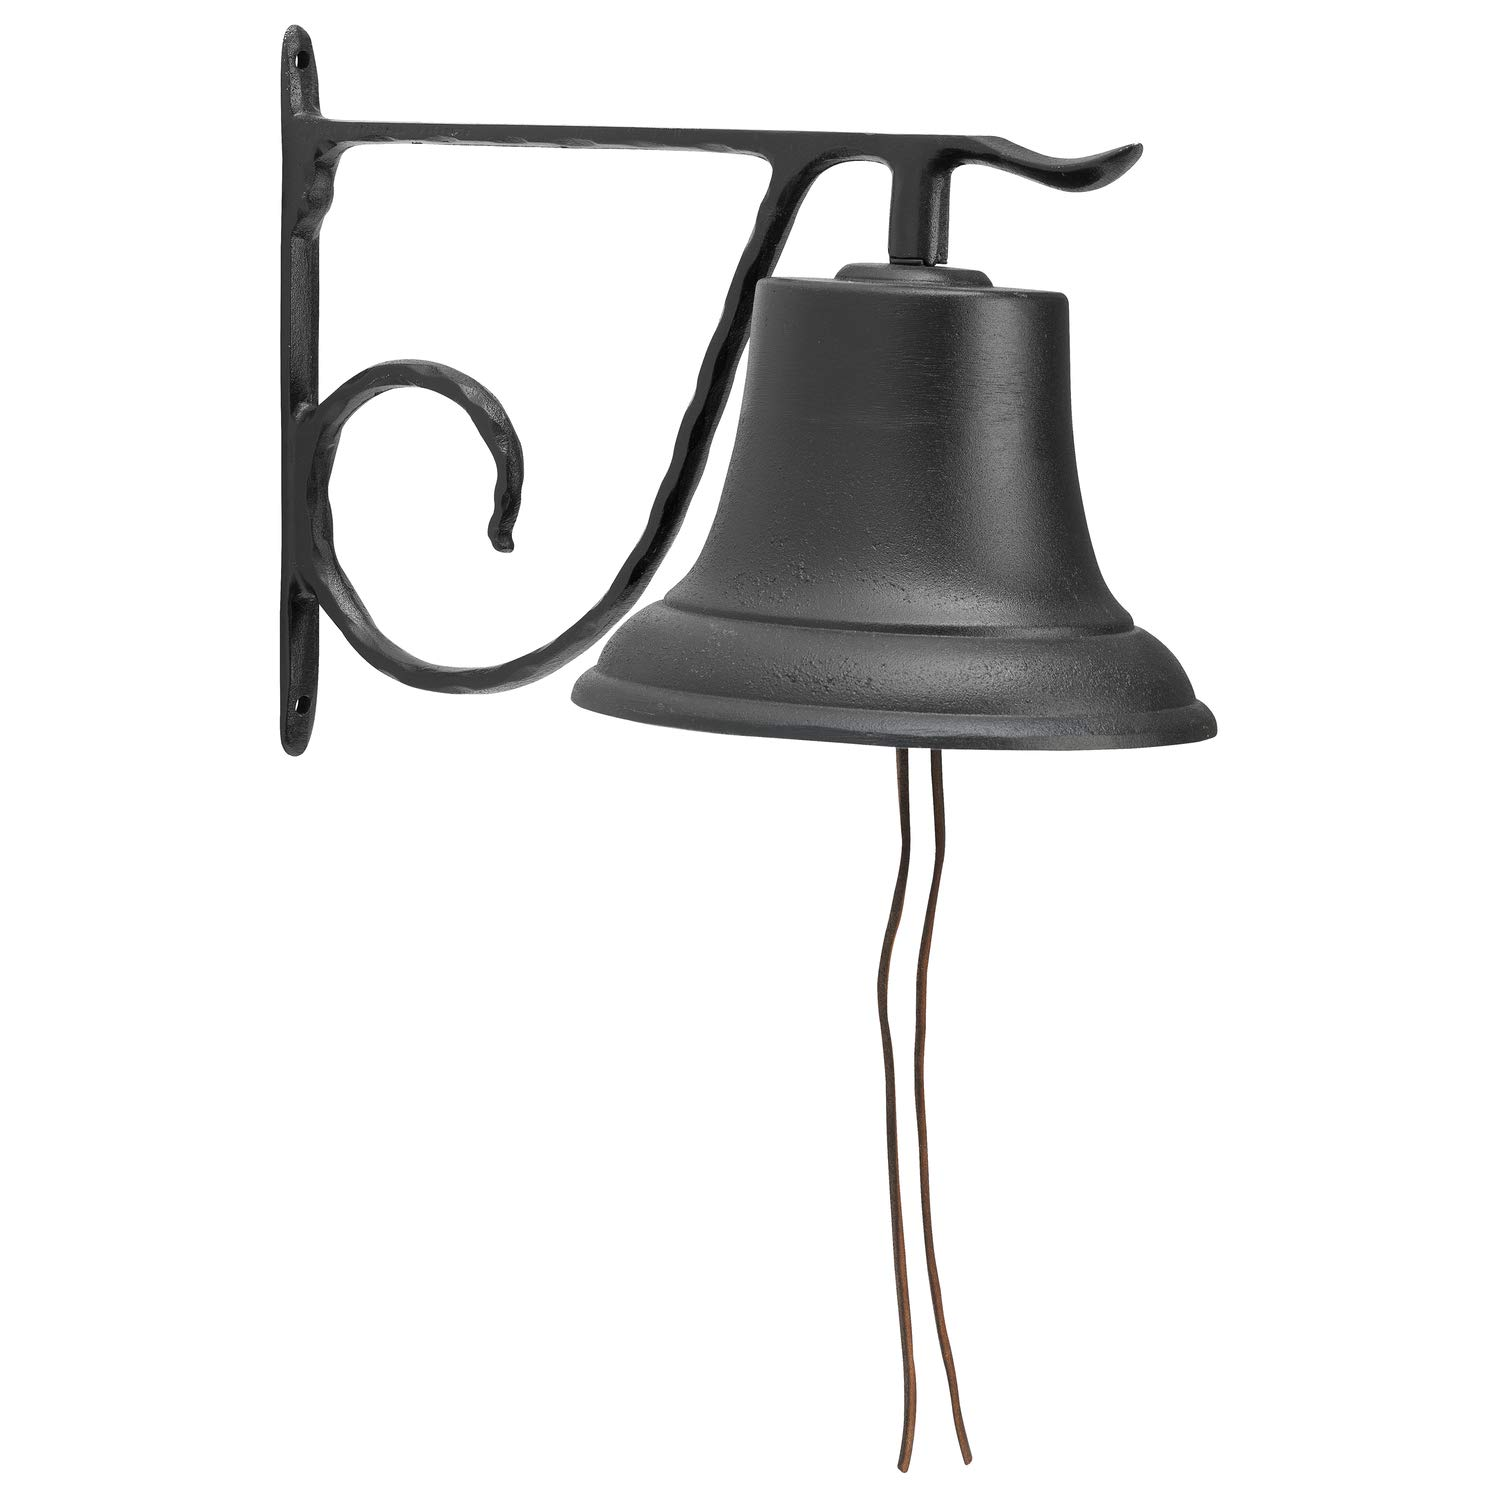 Whitehall Products Decorative Country Bell, Large, Black by Whitehall